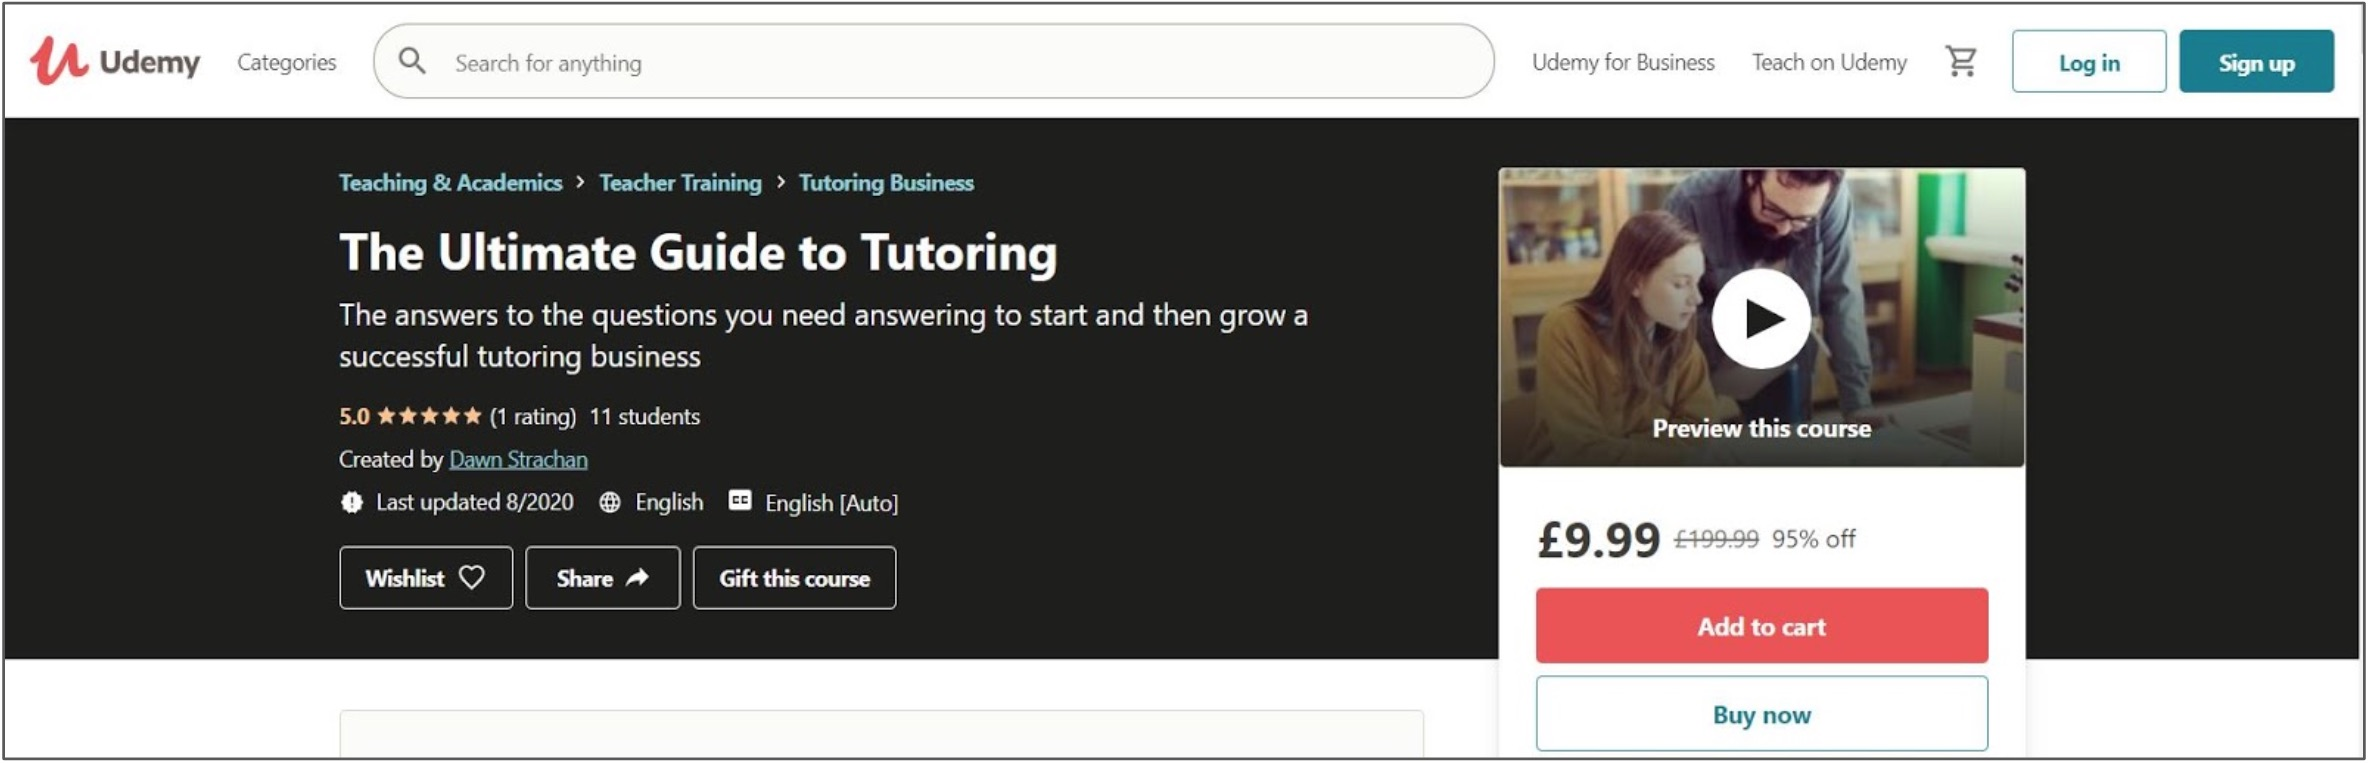 Screenshot of a tutoring course on Udemy